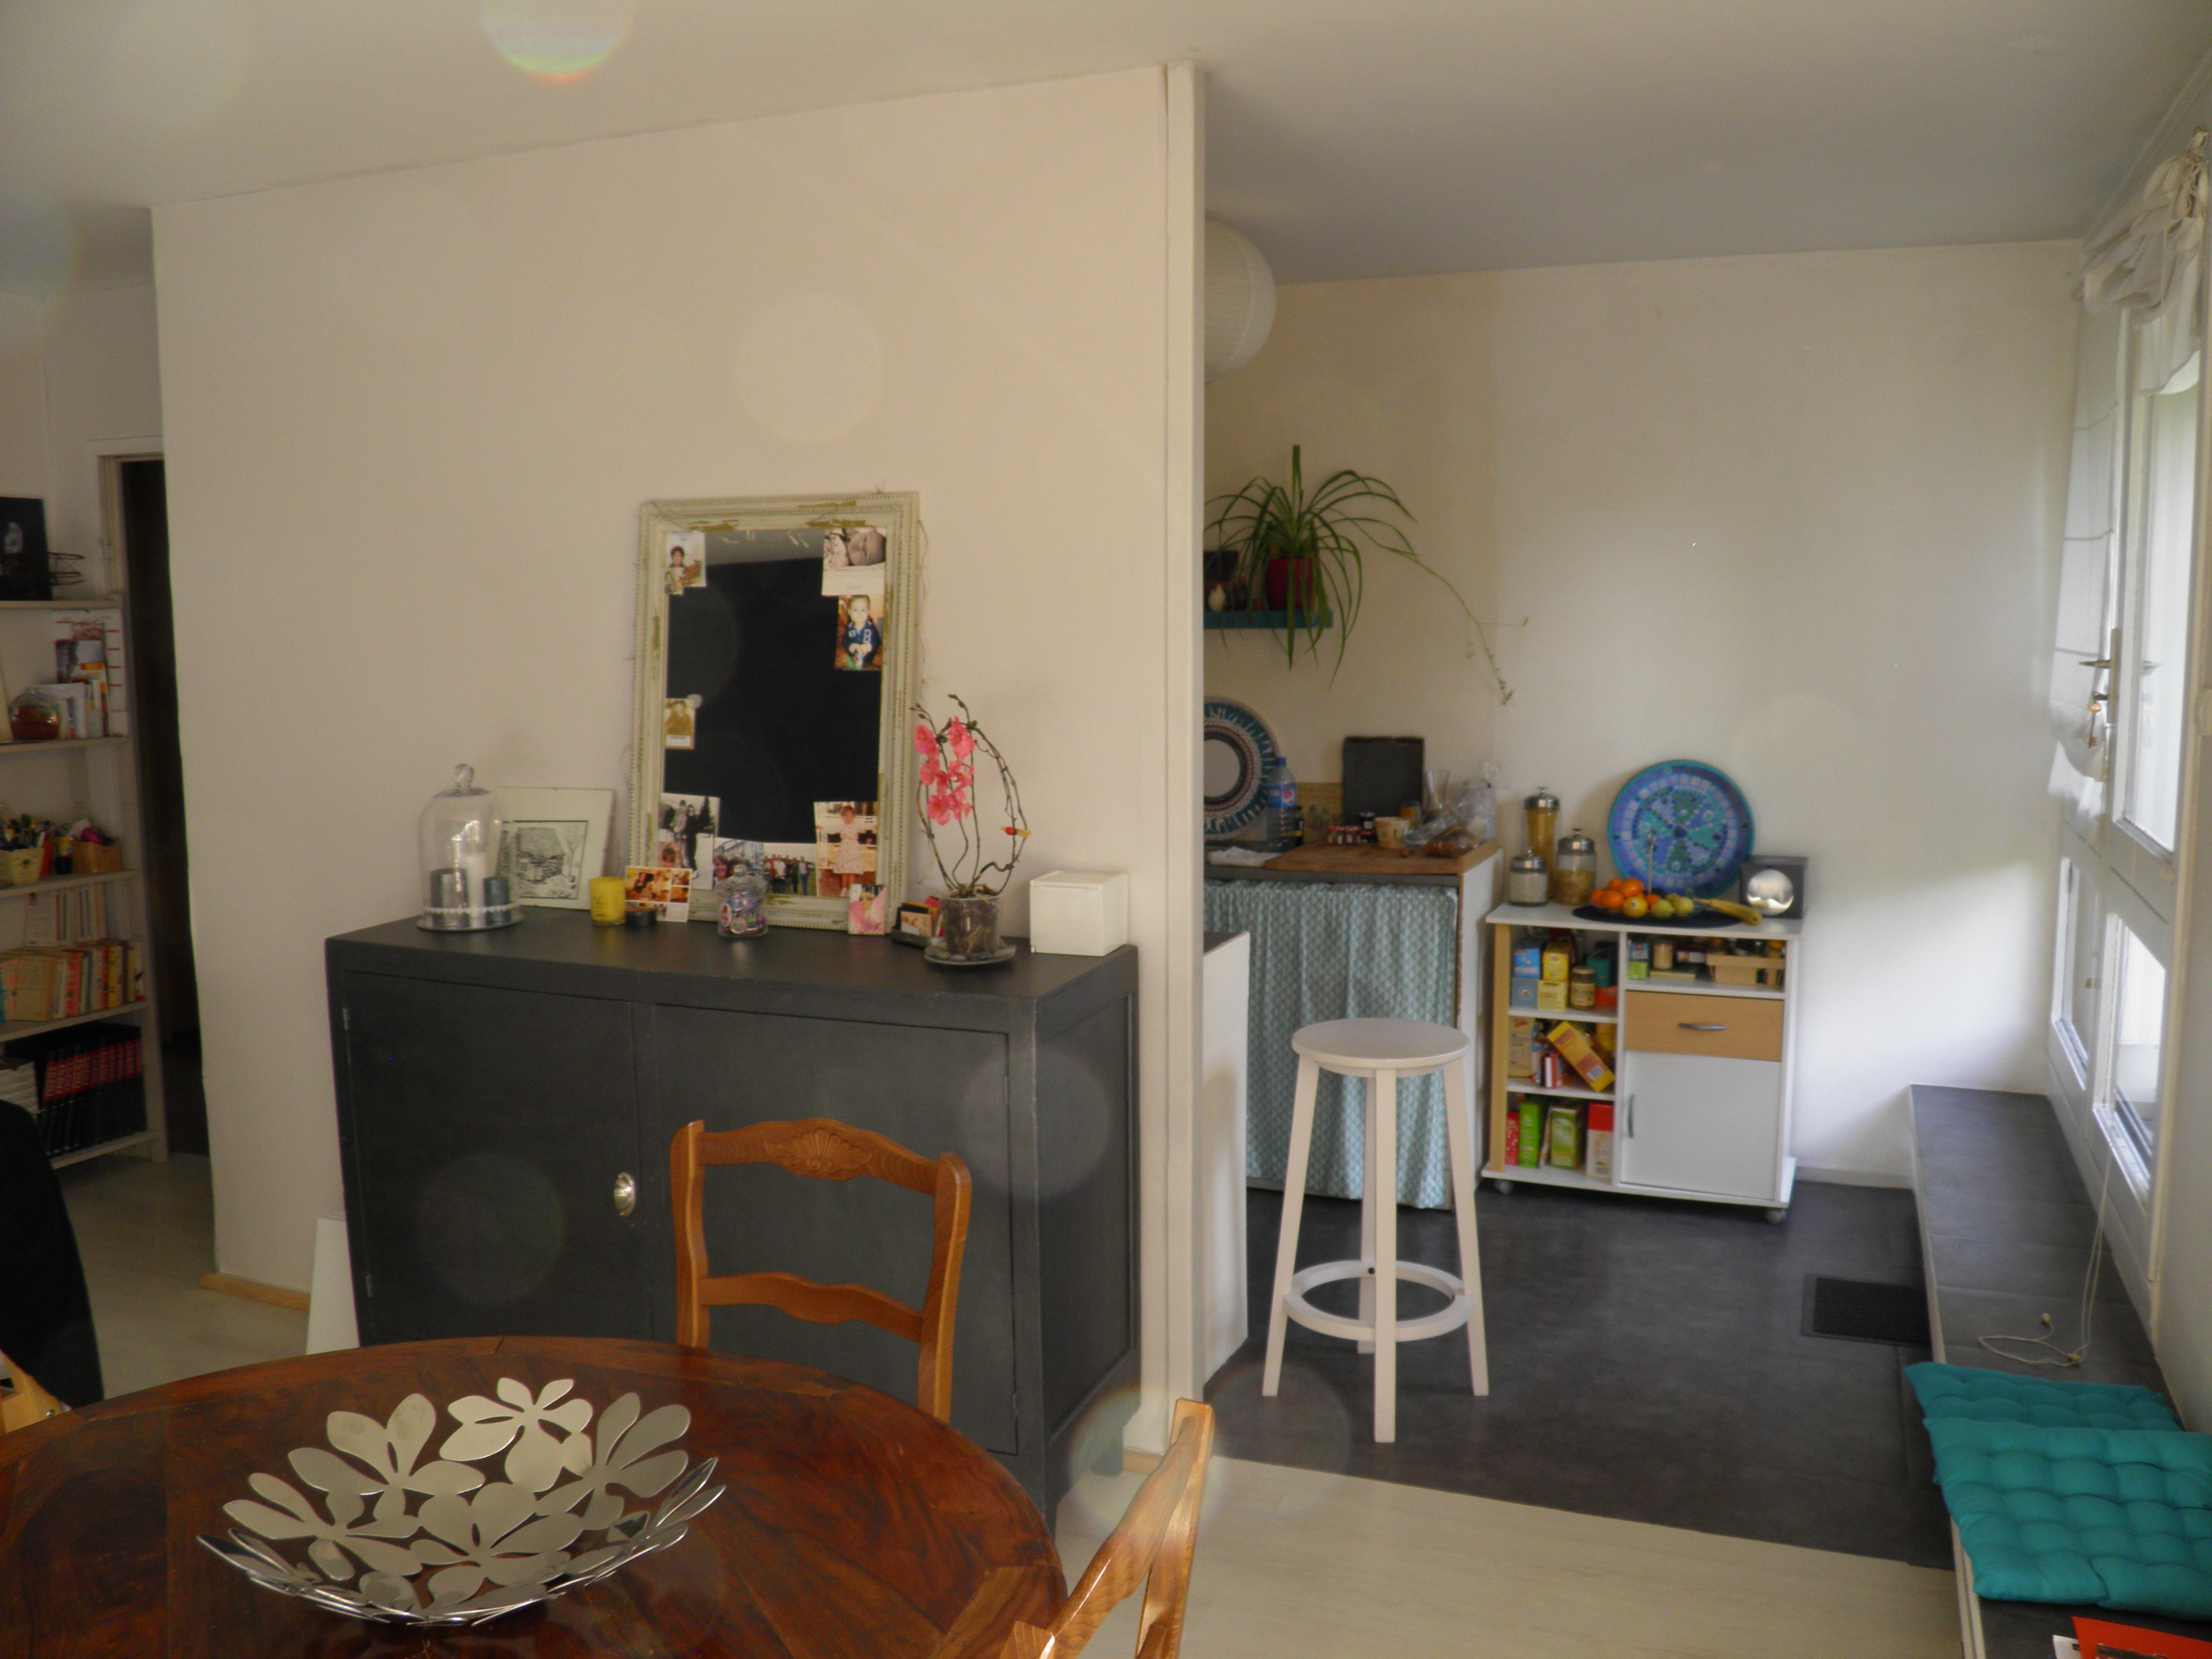 Immobilier angoul me 16 annonces immobili res angoul me - Appartement meuble angouleme ...